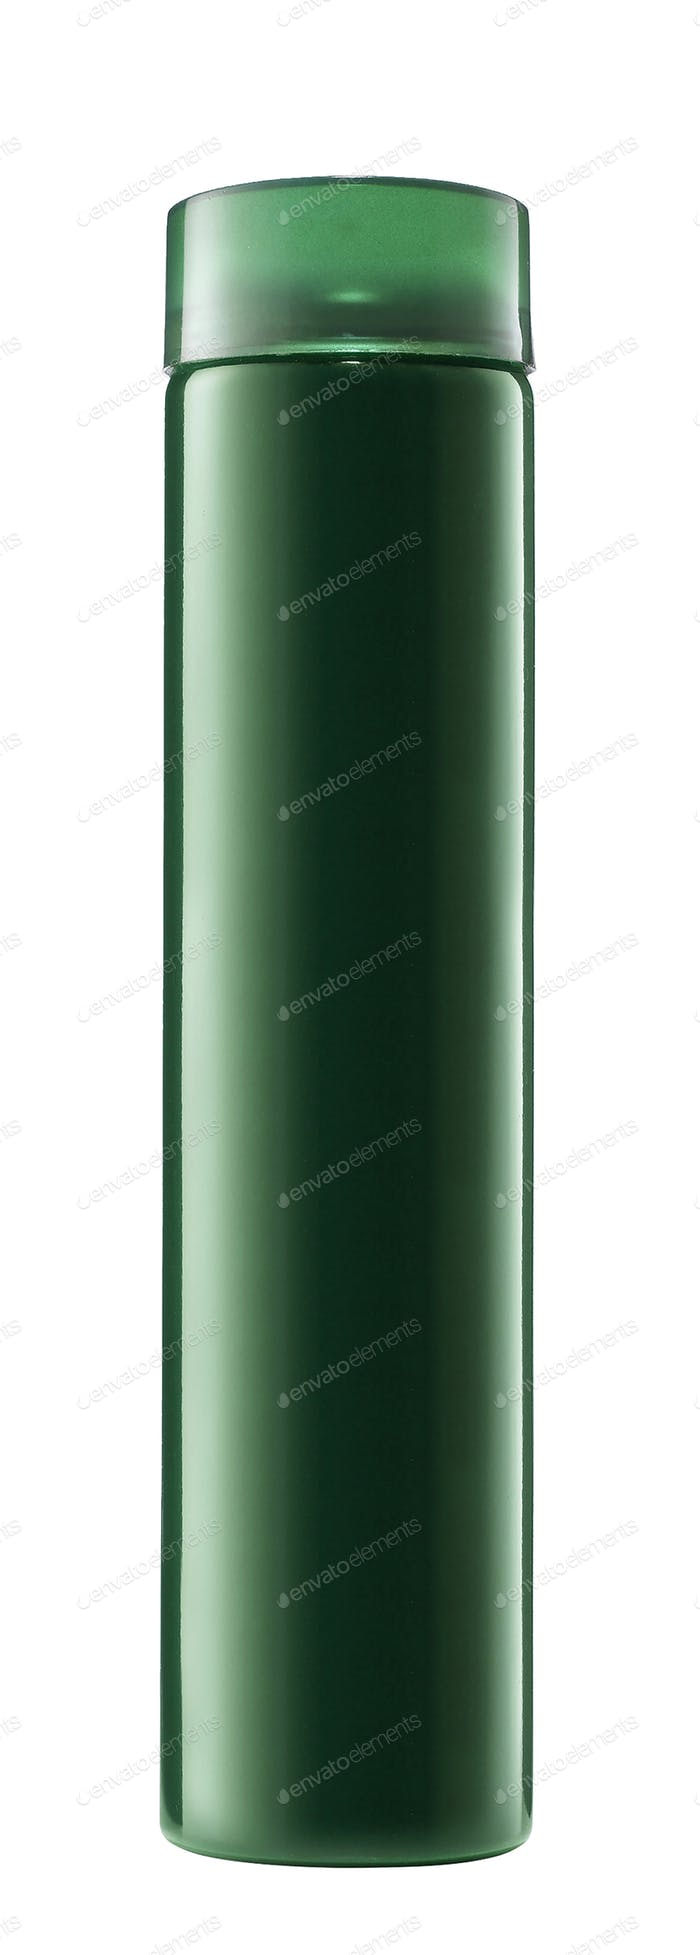 green spray can isolated